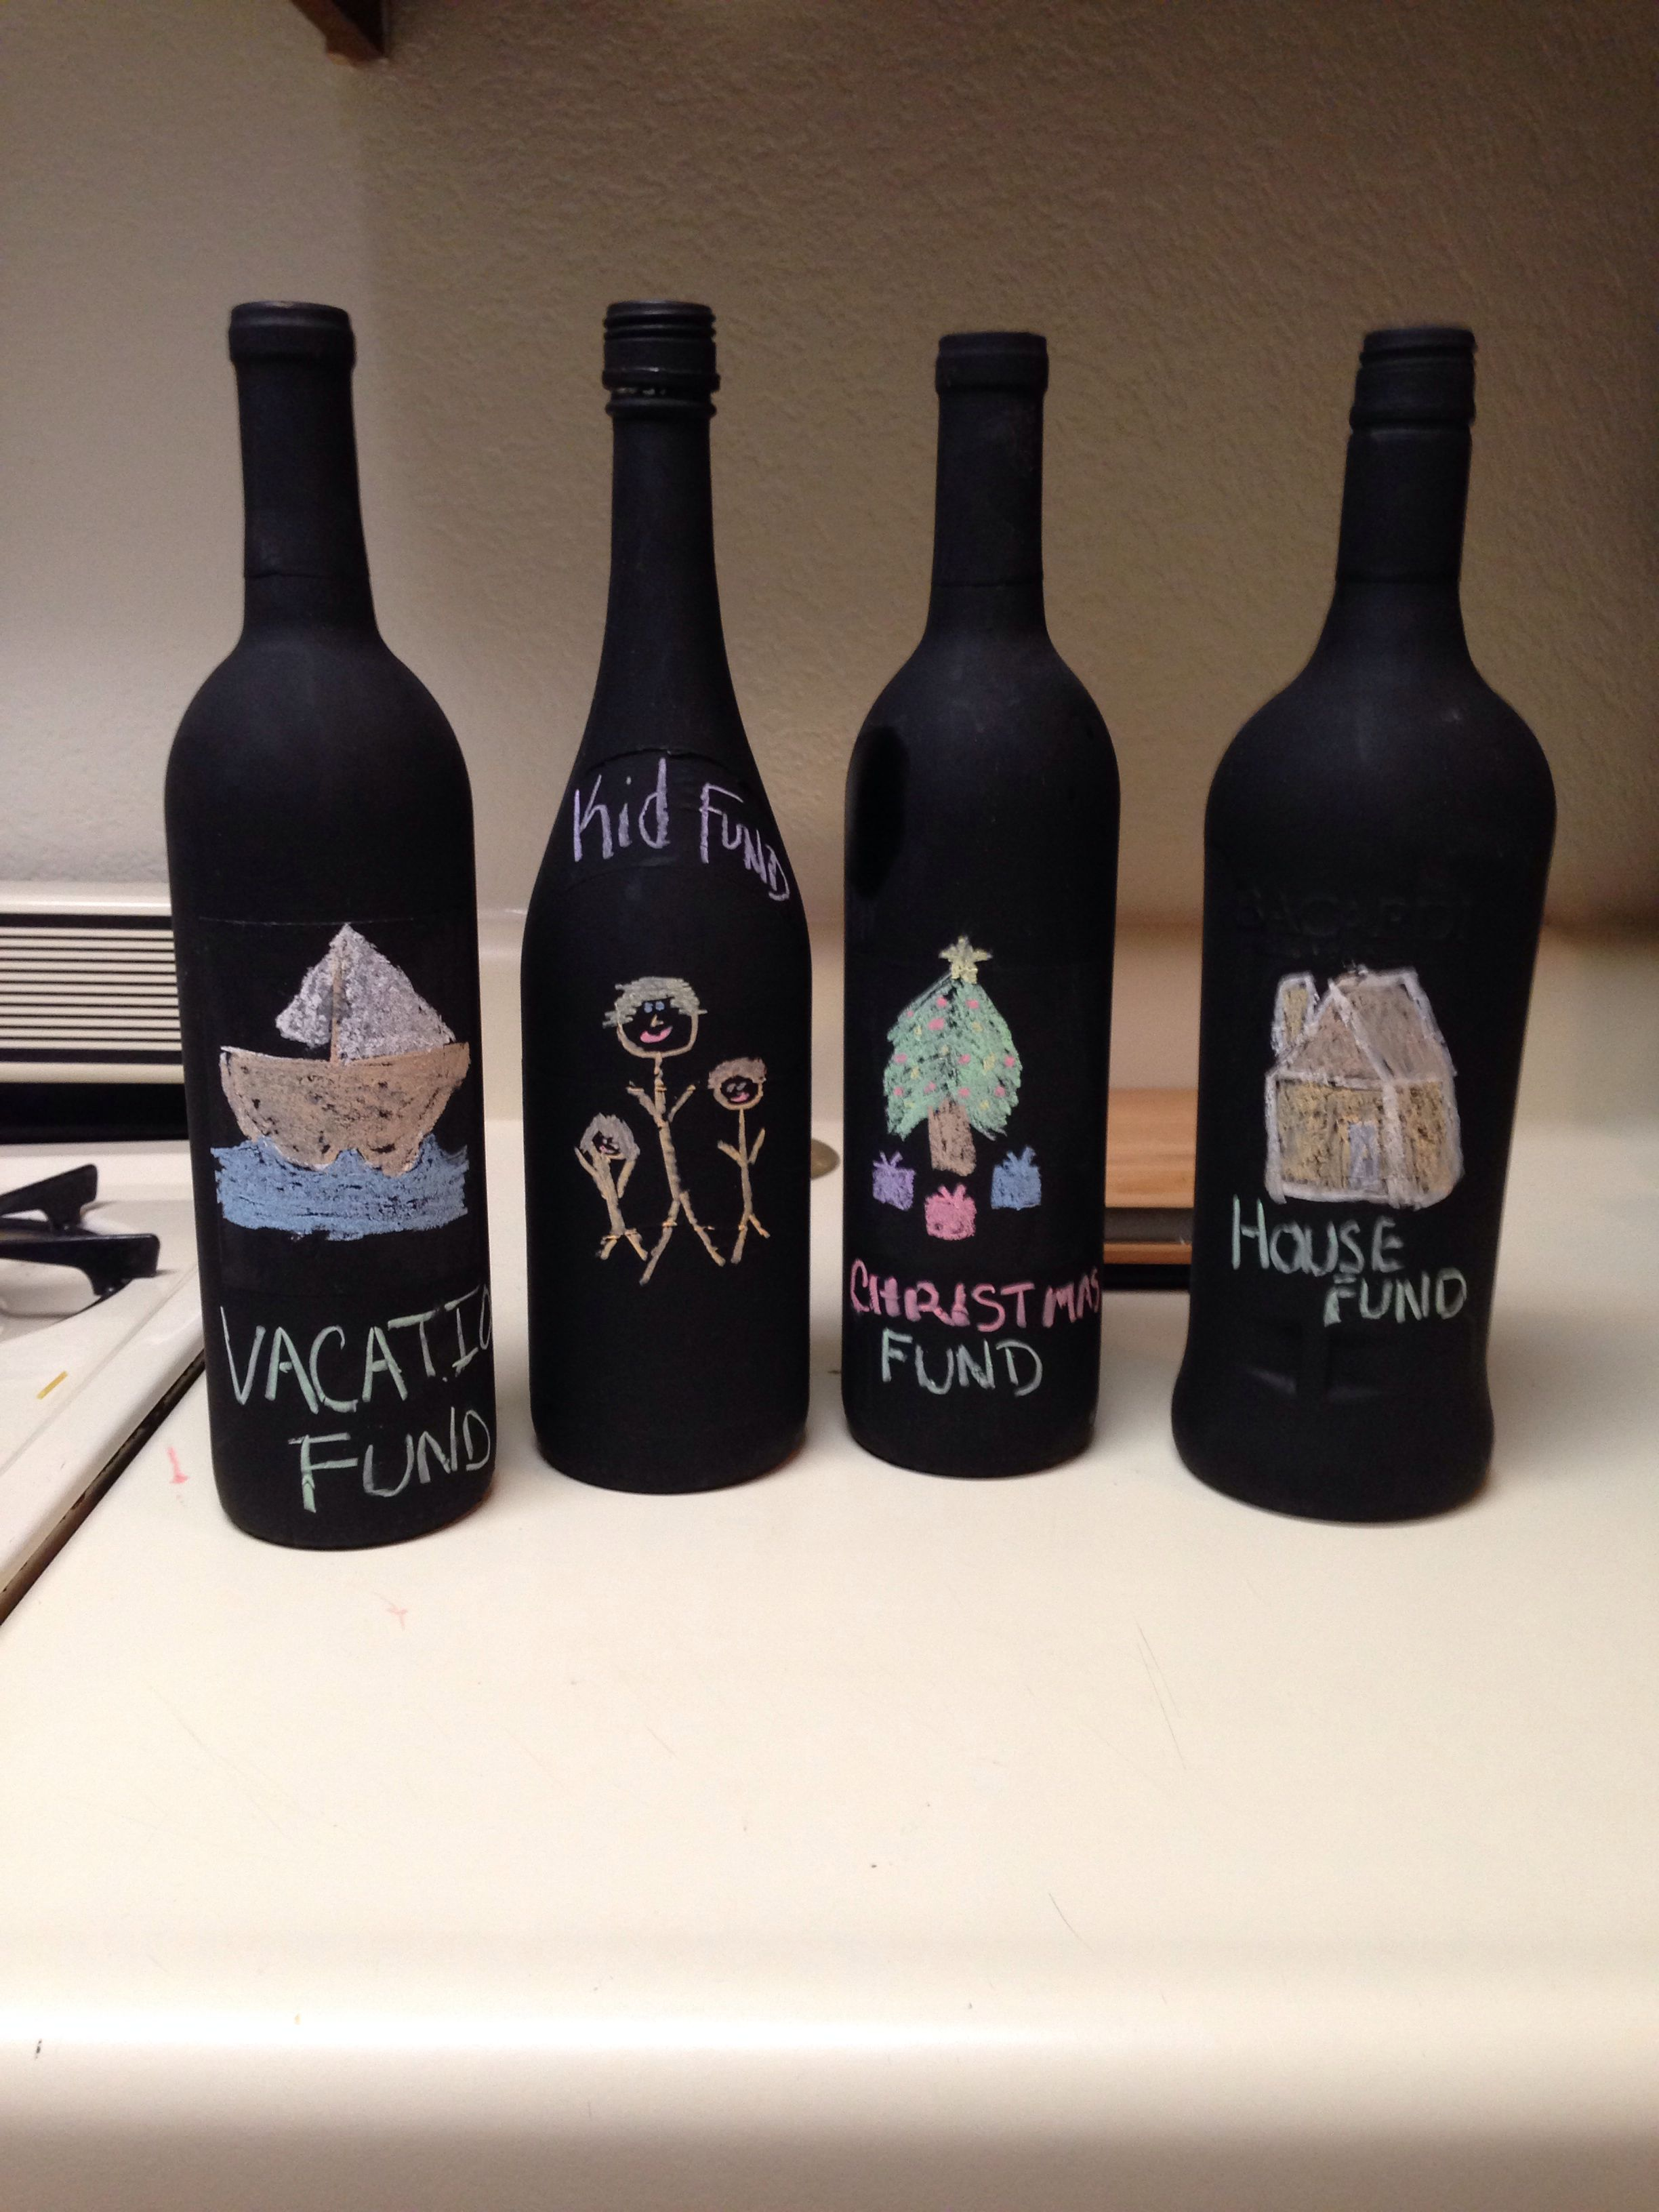 My husband and I needed a new way to save money. We used some old wine bottles and painted them with chalkboard paint. After the bottles dried, we decorated them using chalk to write what we were going to save up for. On the back we have how much $ we put in the bottles. Once we hit out goal or the bottle is stuffed with cash, we'll break open the bottles. It's fun and frugal!